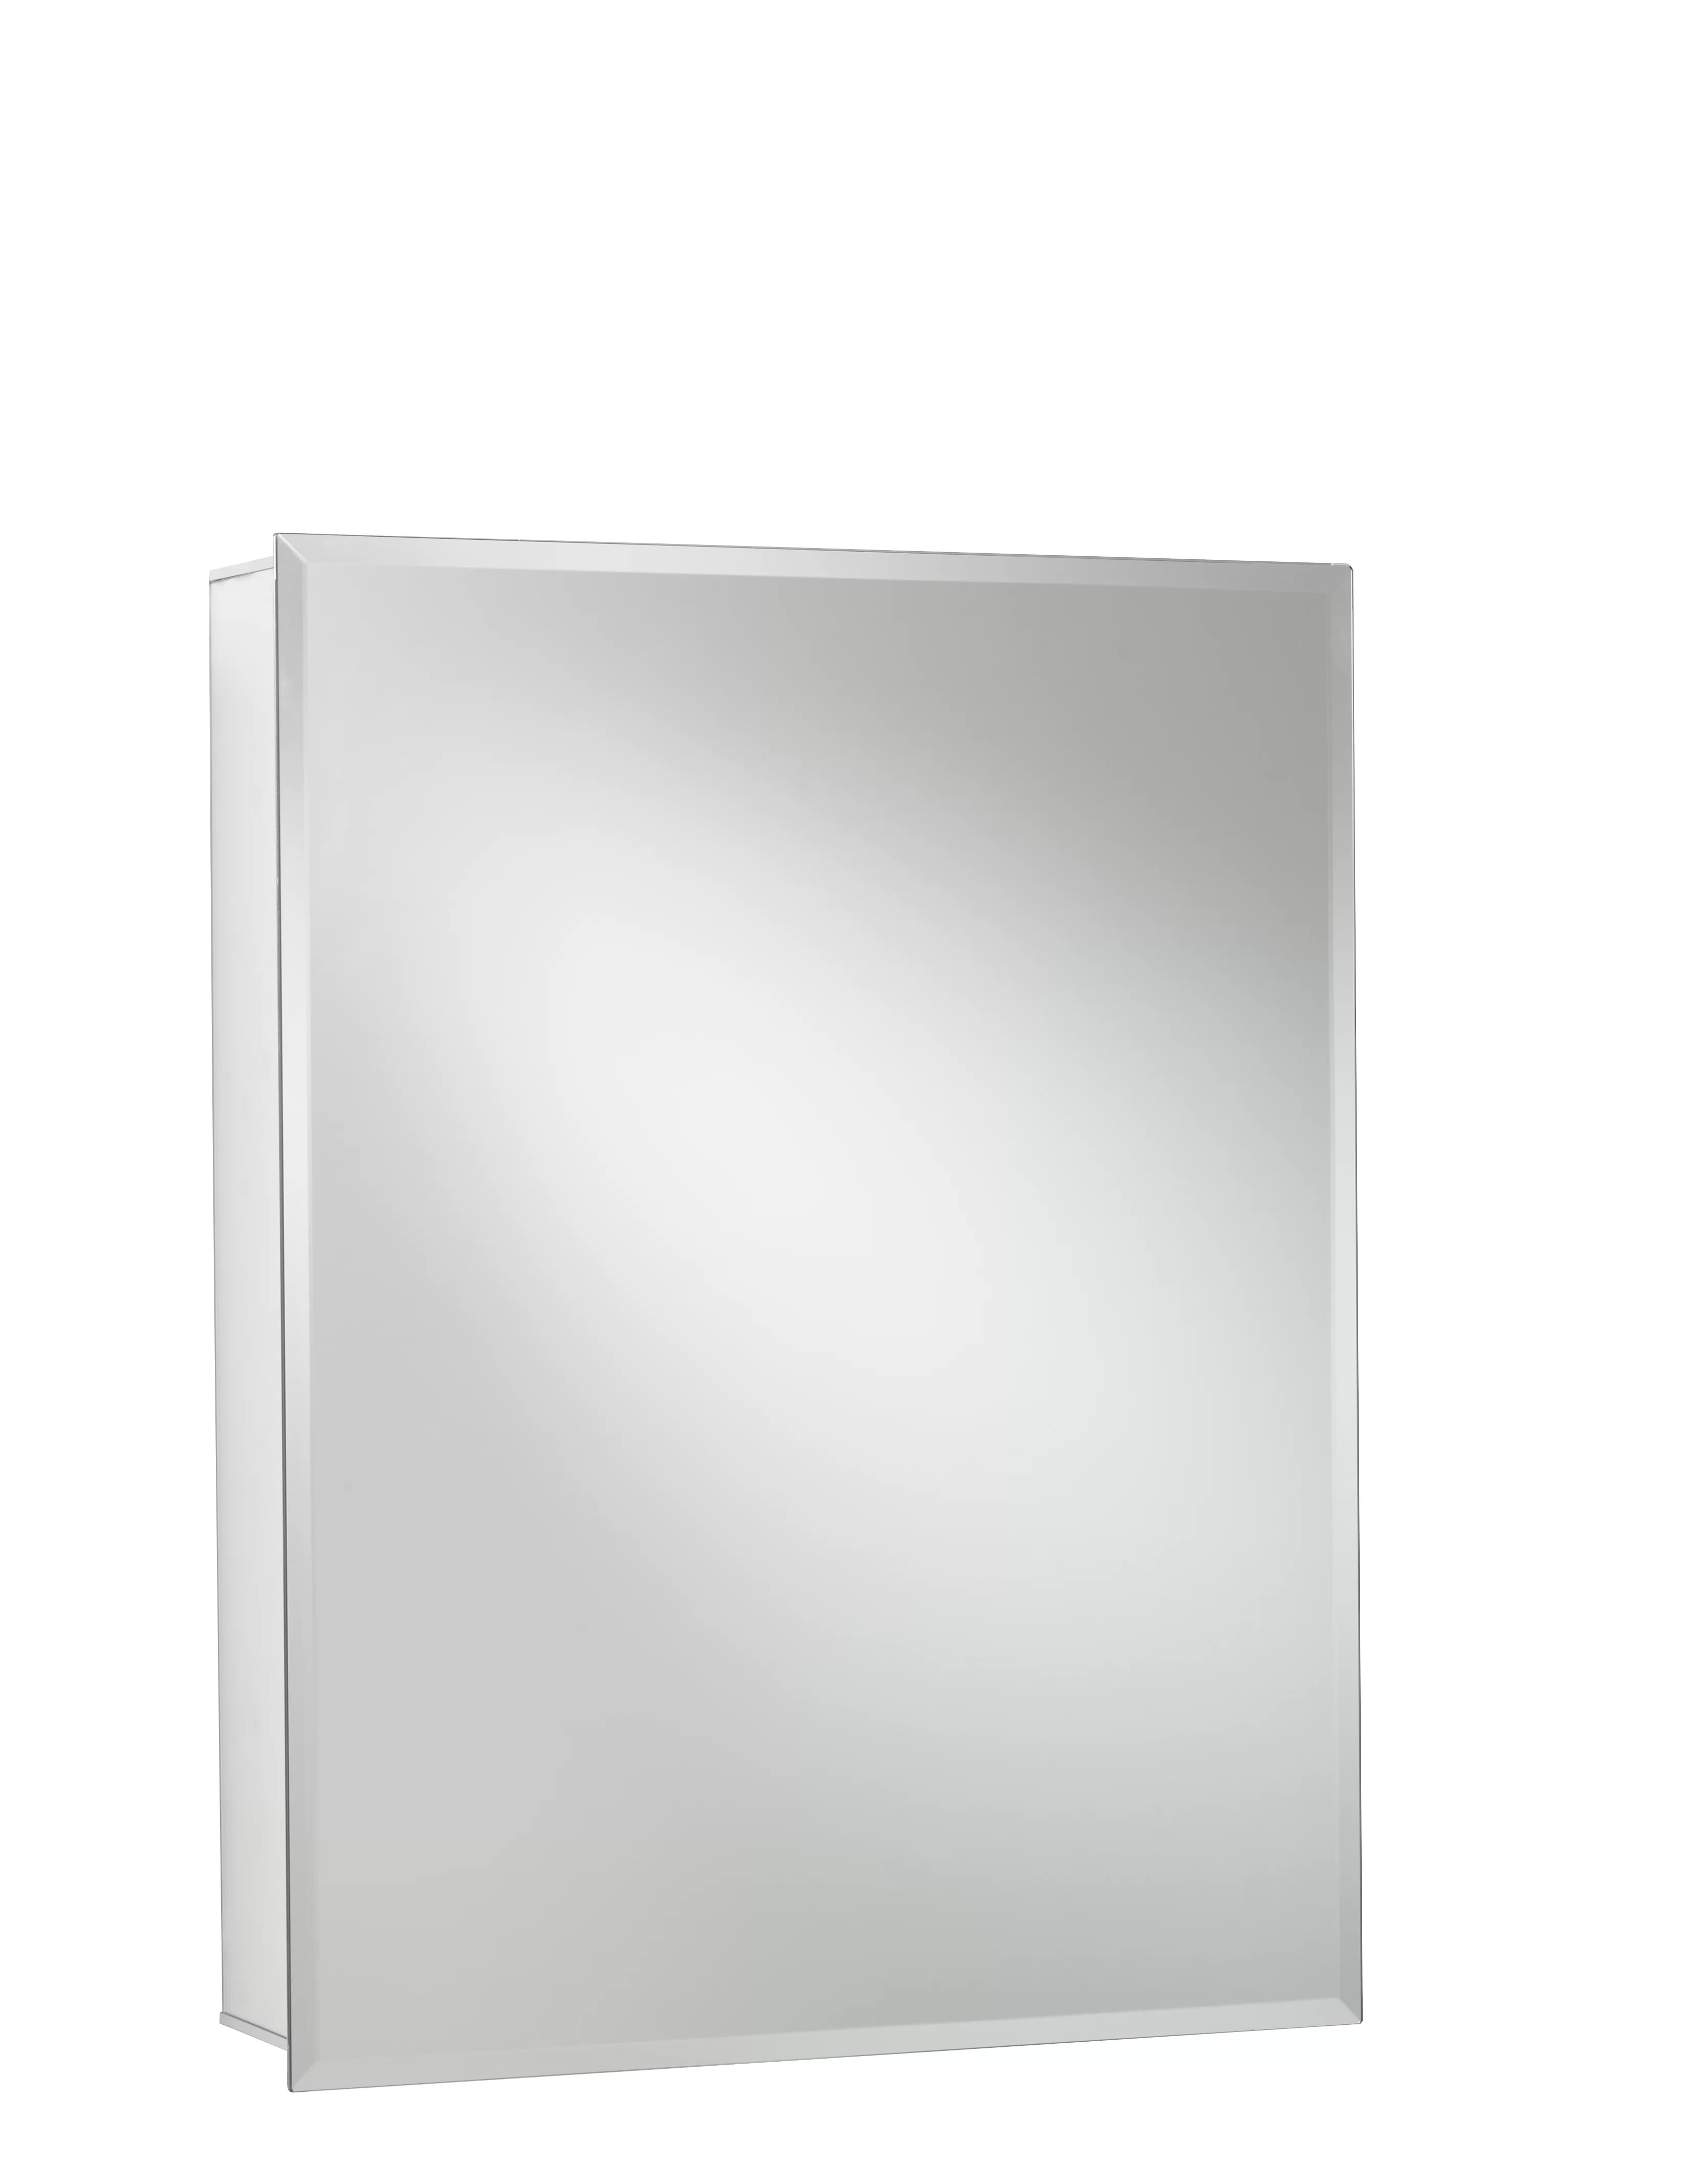 Jacuzzi 24 X 30 Recessed Or Surface Mount Frameless Medicine Cabinet With 2 Adjustable Shelves Reviews Wayfair